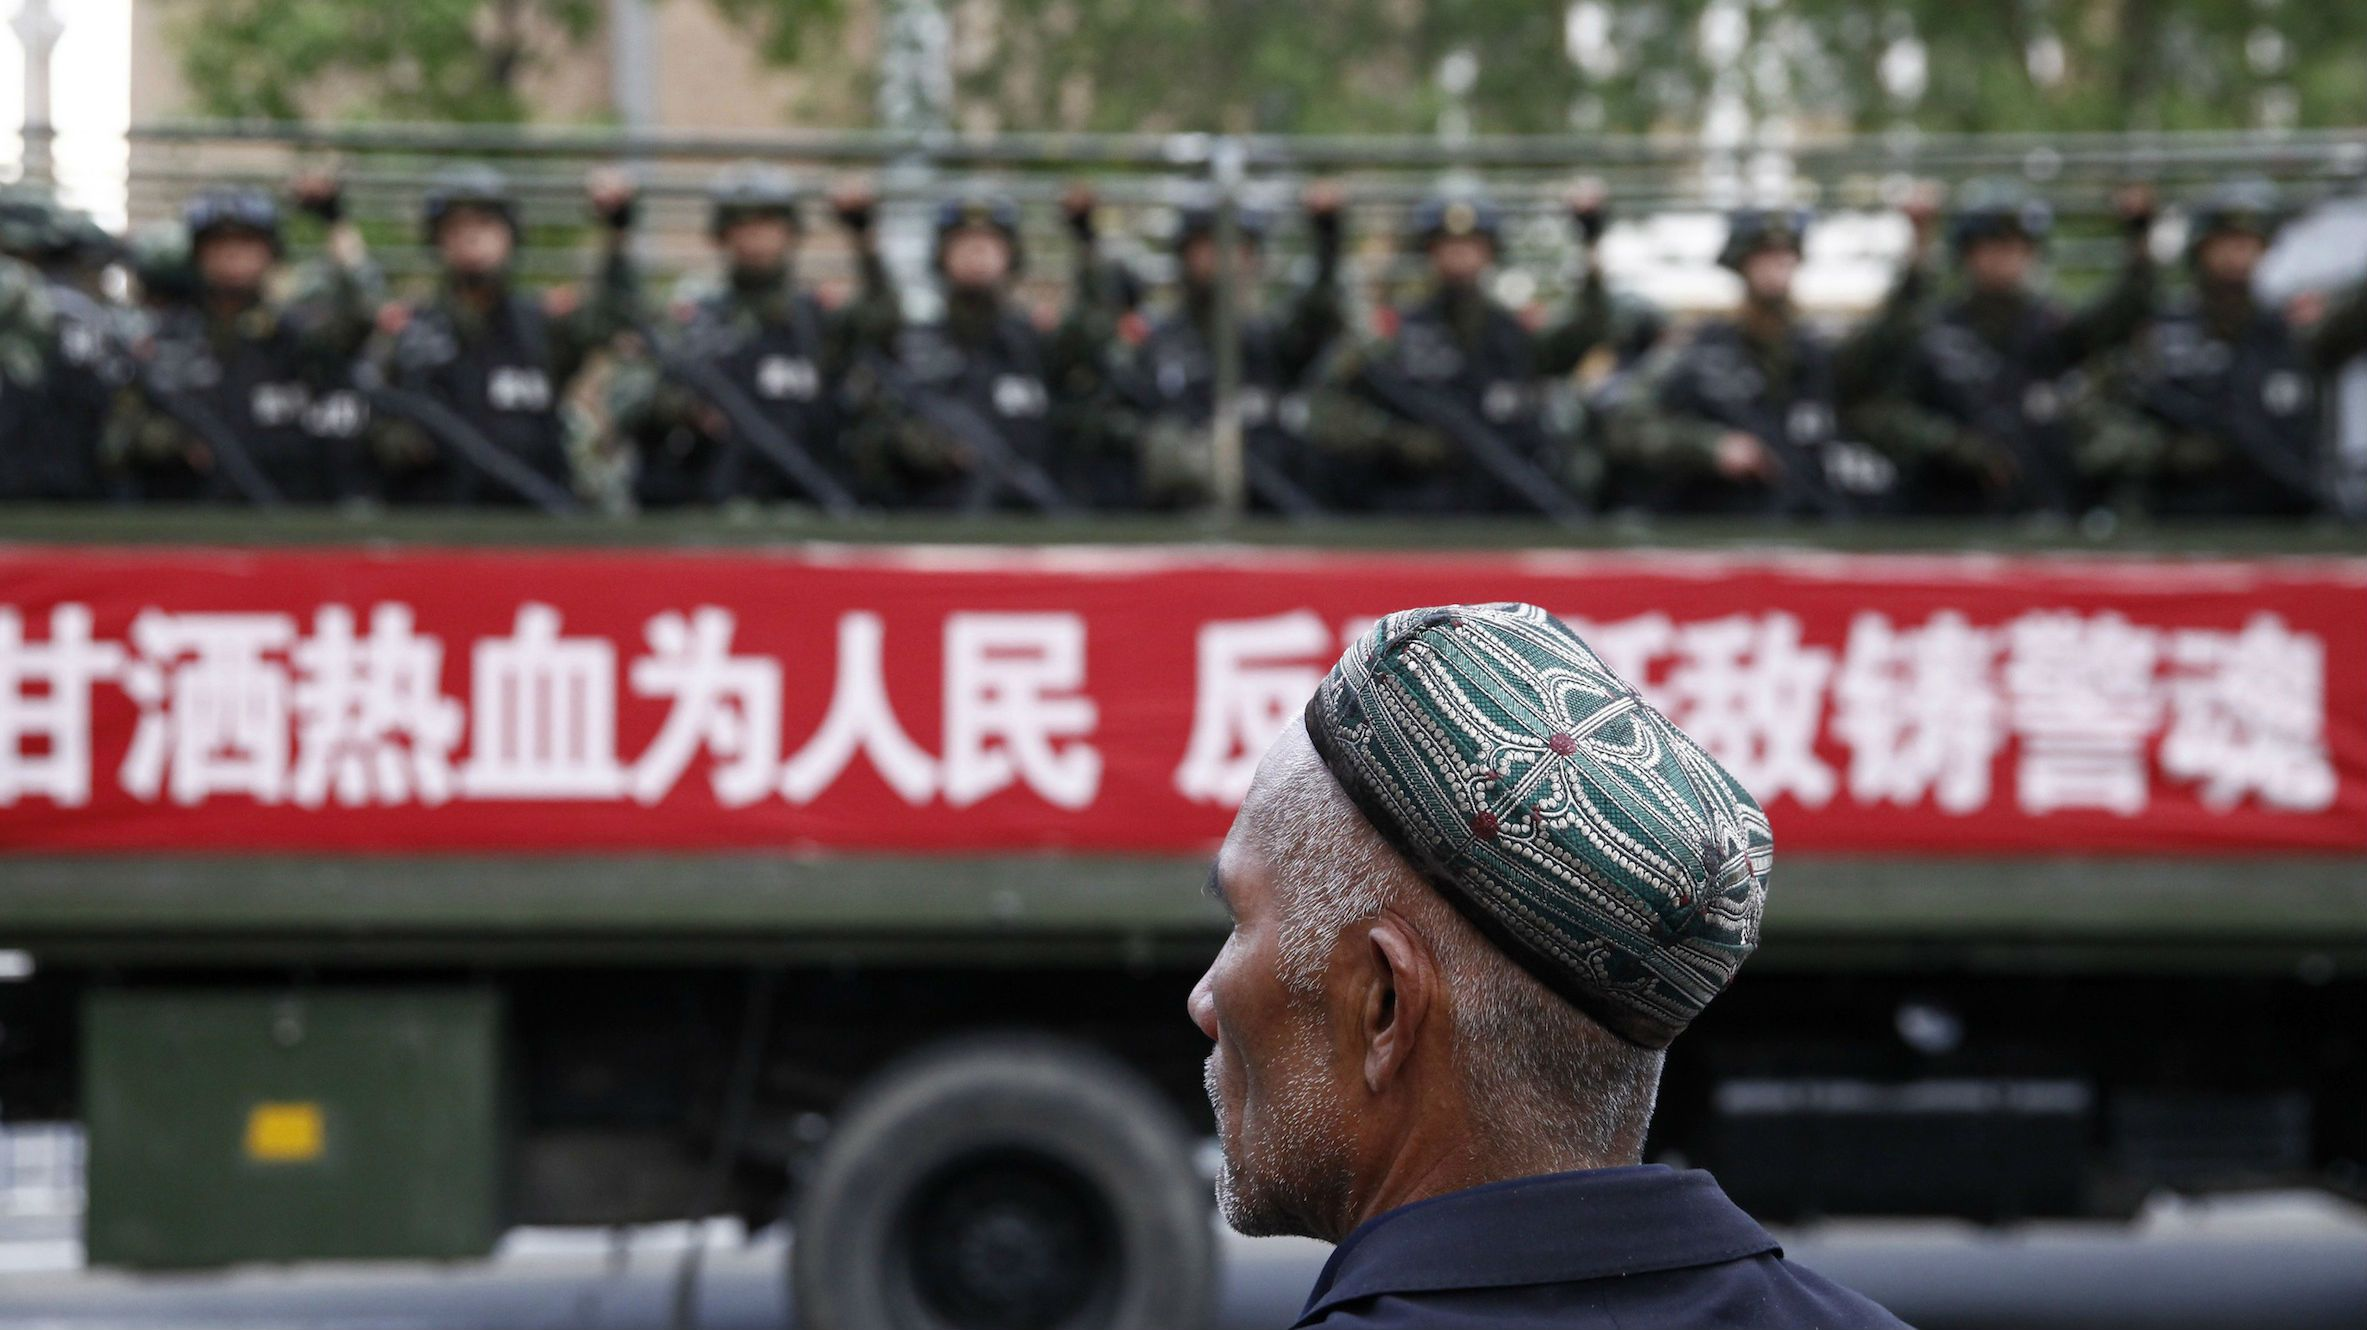 hinese police shot dead dozens of knife-wielding attackers on Monday morning after they staged assaults on two towns in the western region of Xinjiang, the official Xinhua news agency said on Tuesday.